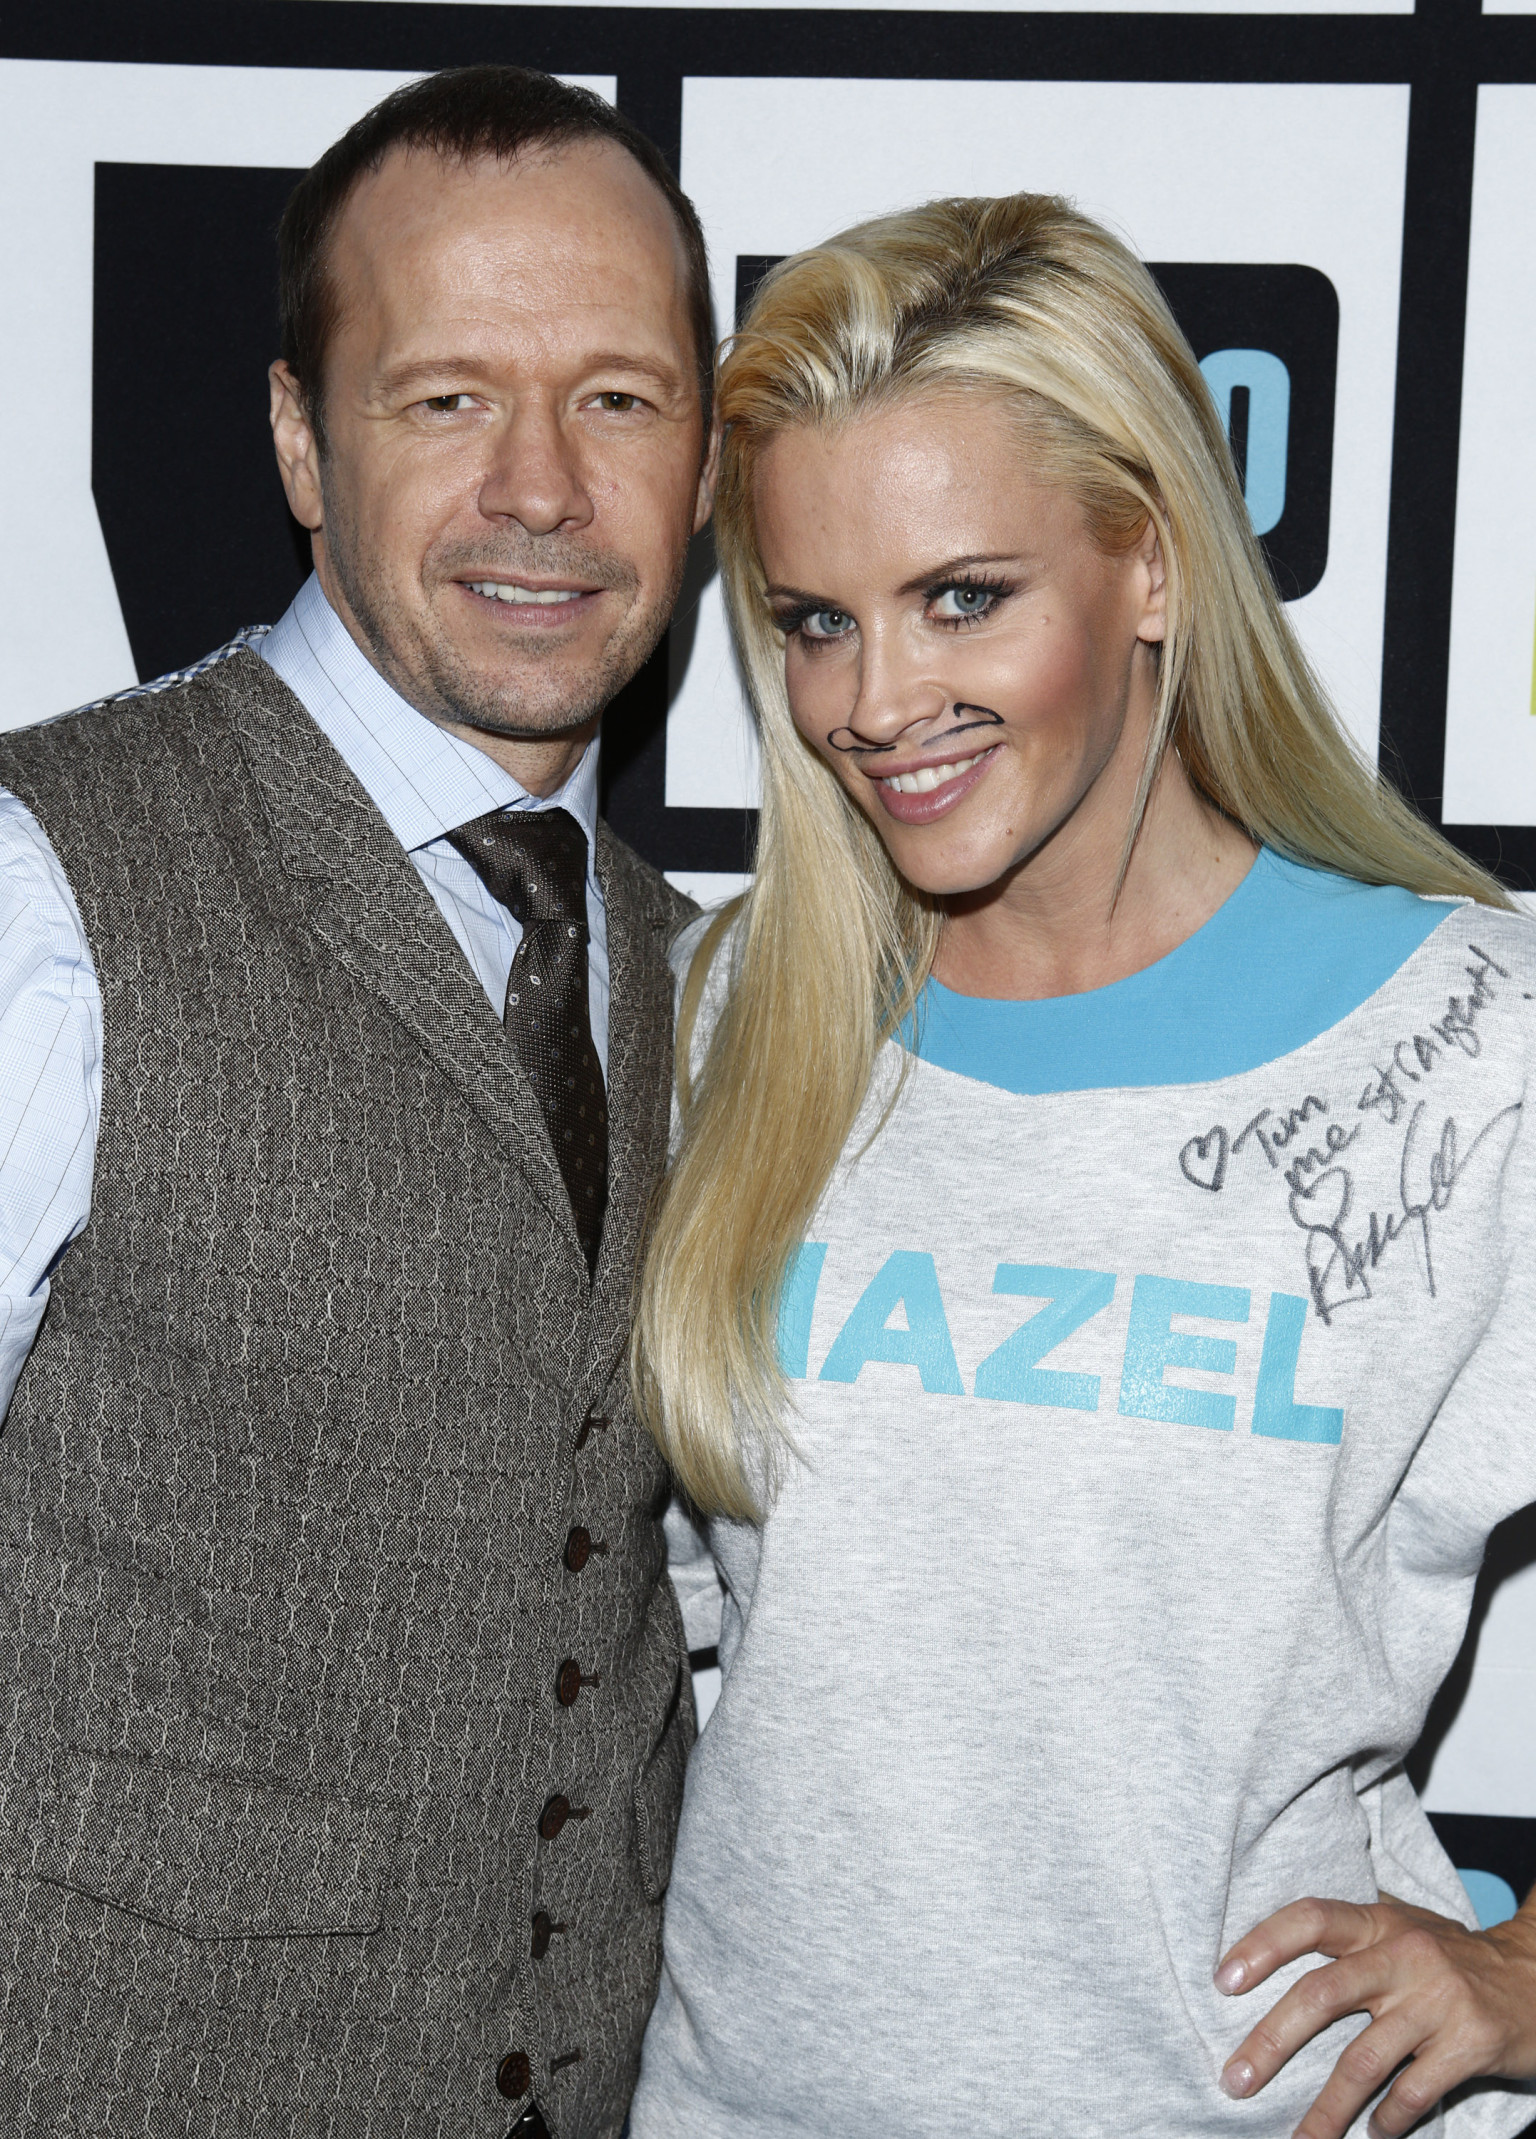 Donnie Wahlberg & Jenny McCarthy: 5 Fast Facts to